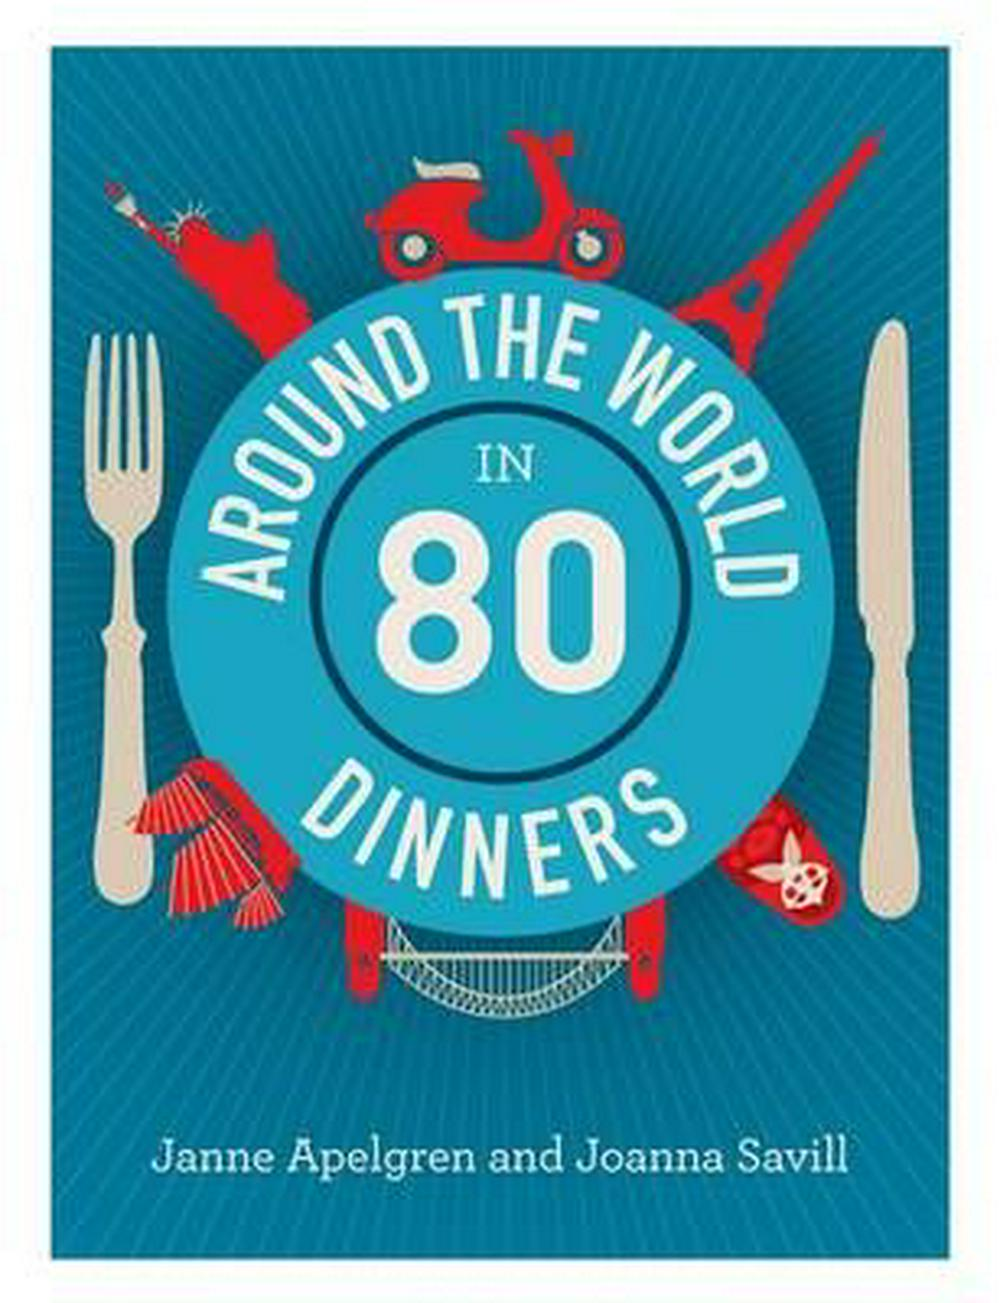 Around the world in 80 dinners by Janne Apelgren, ISBN: 9780522869507